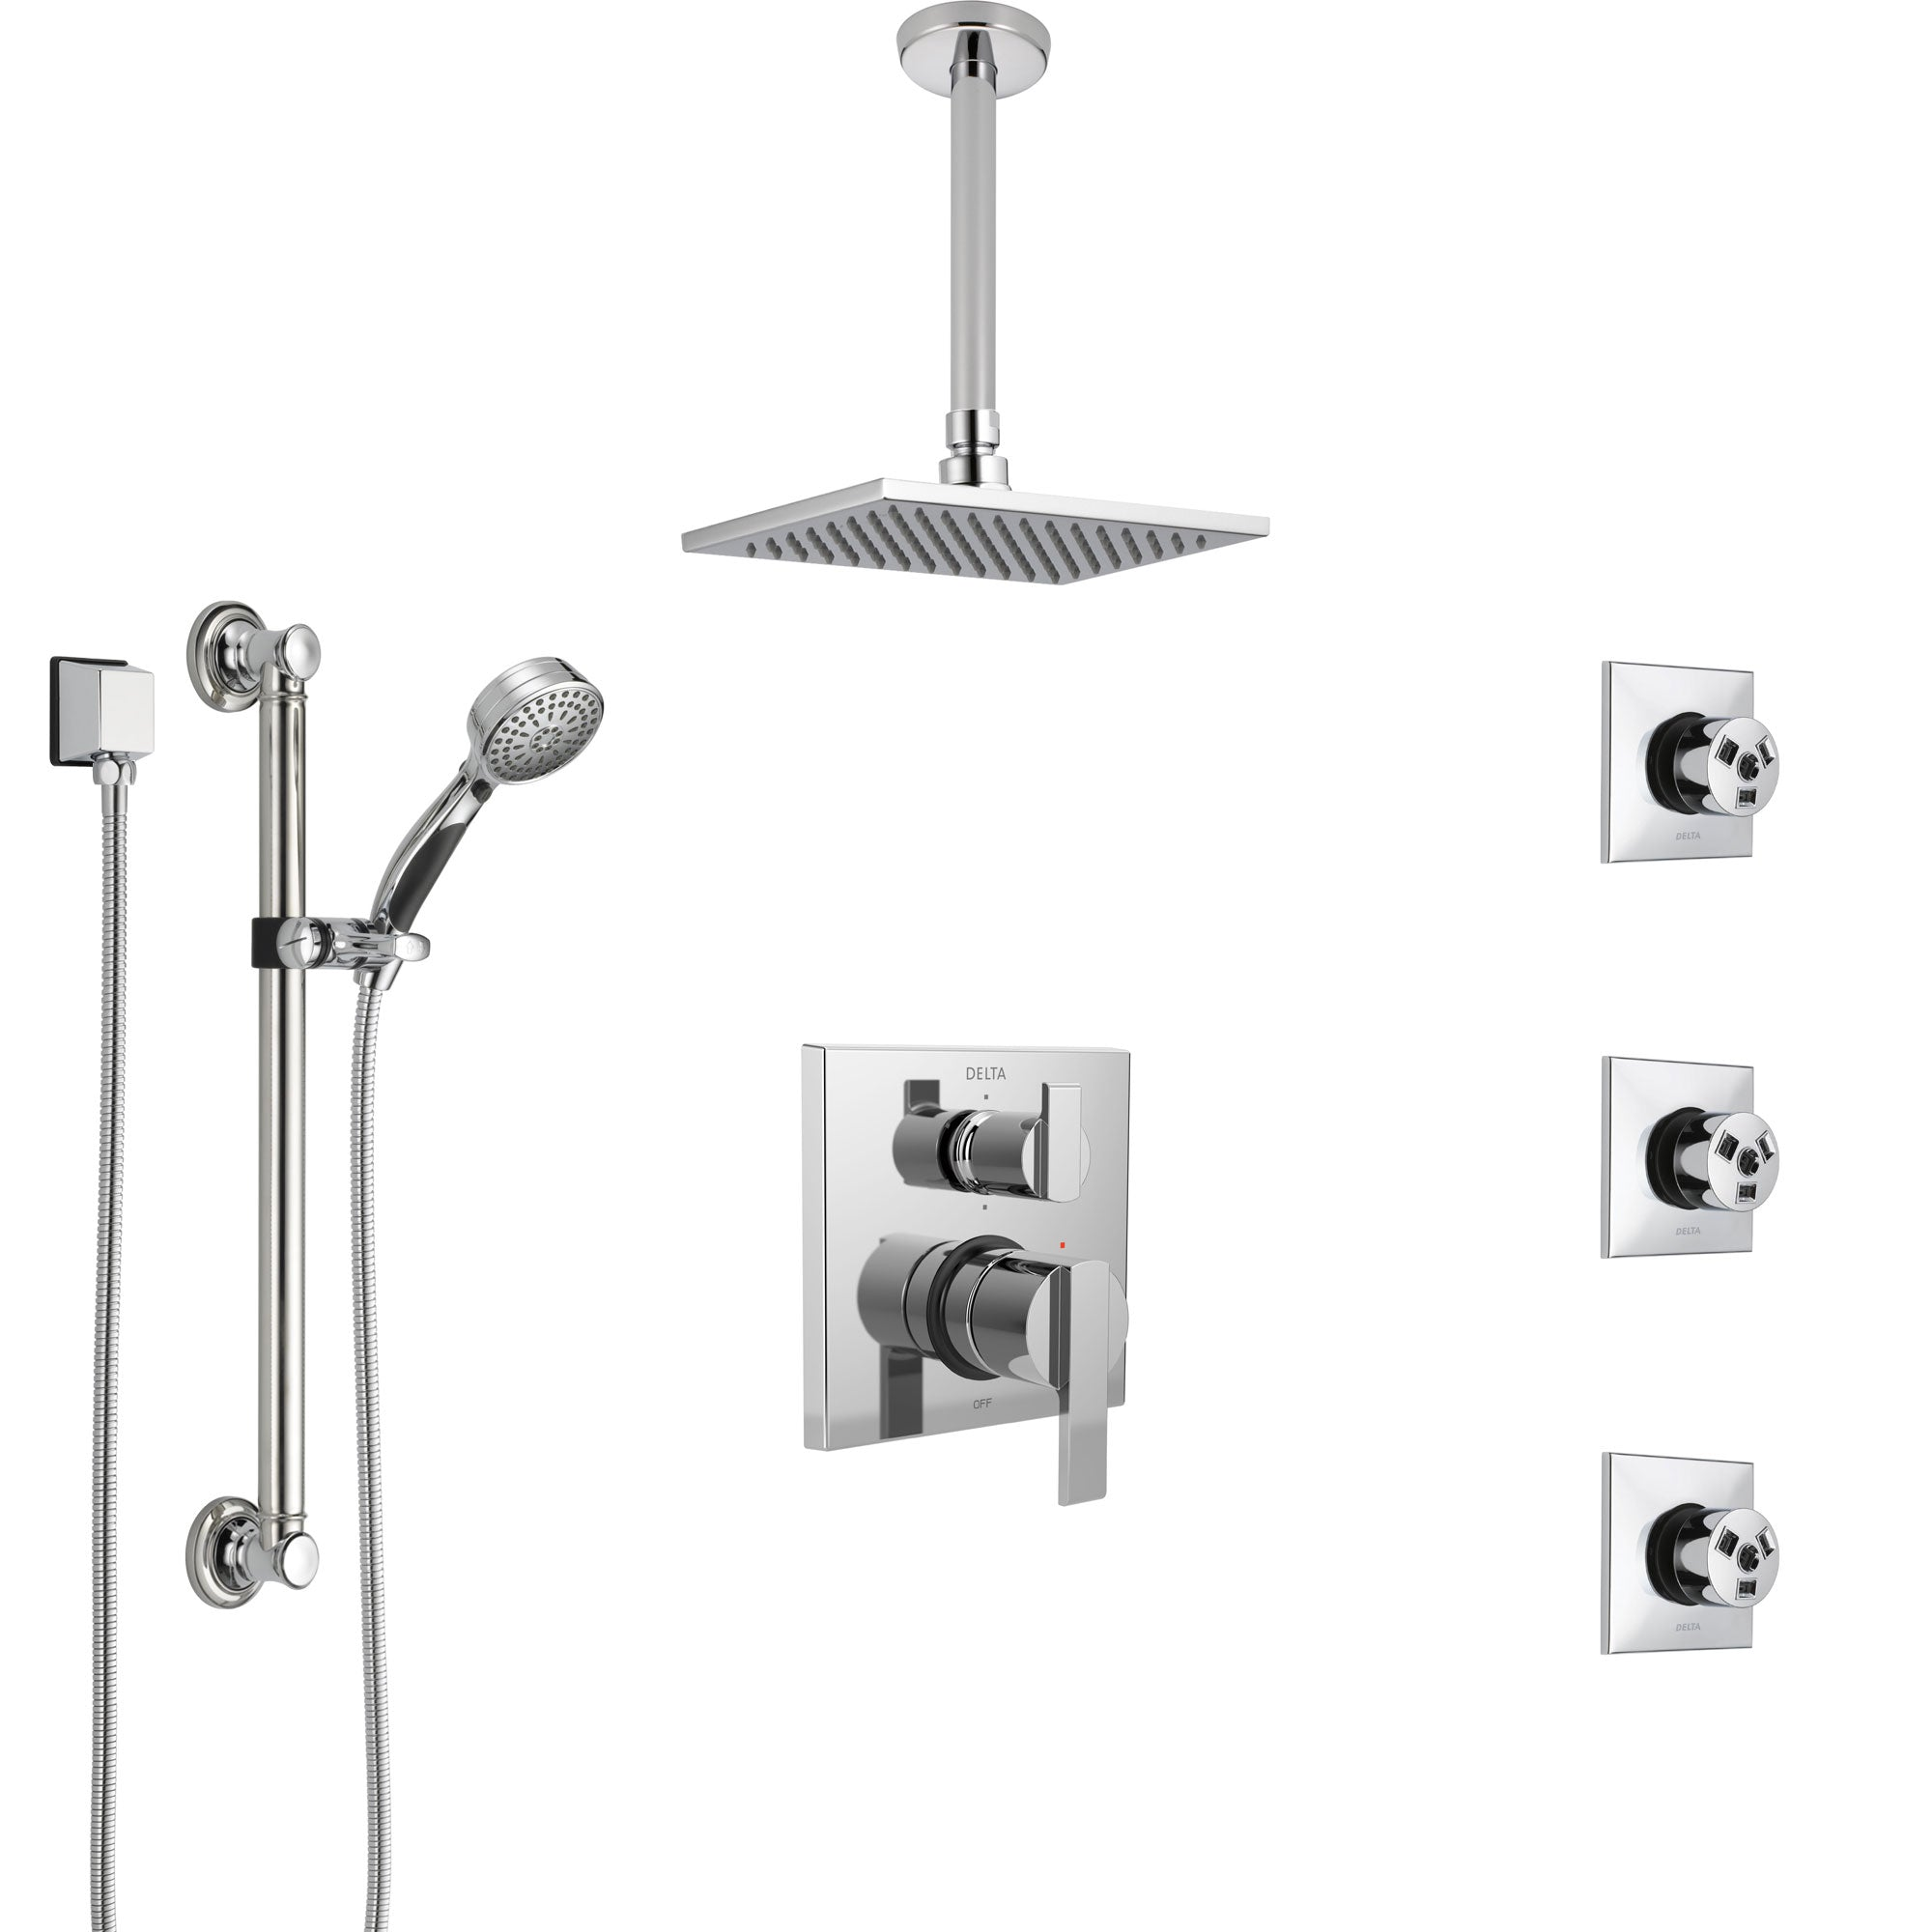 Delta Ara Chrome Shower System with Control Handle, Integrated Diverter, Ceiling Mount Showerhead, 3 Body Sprays, and Grab Bar Hand Shower SS249679